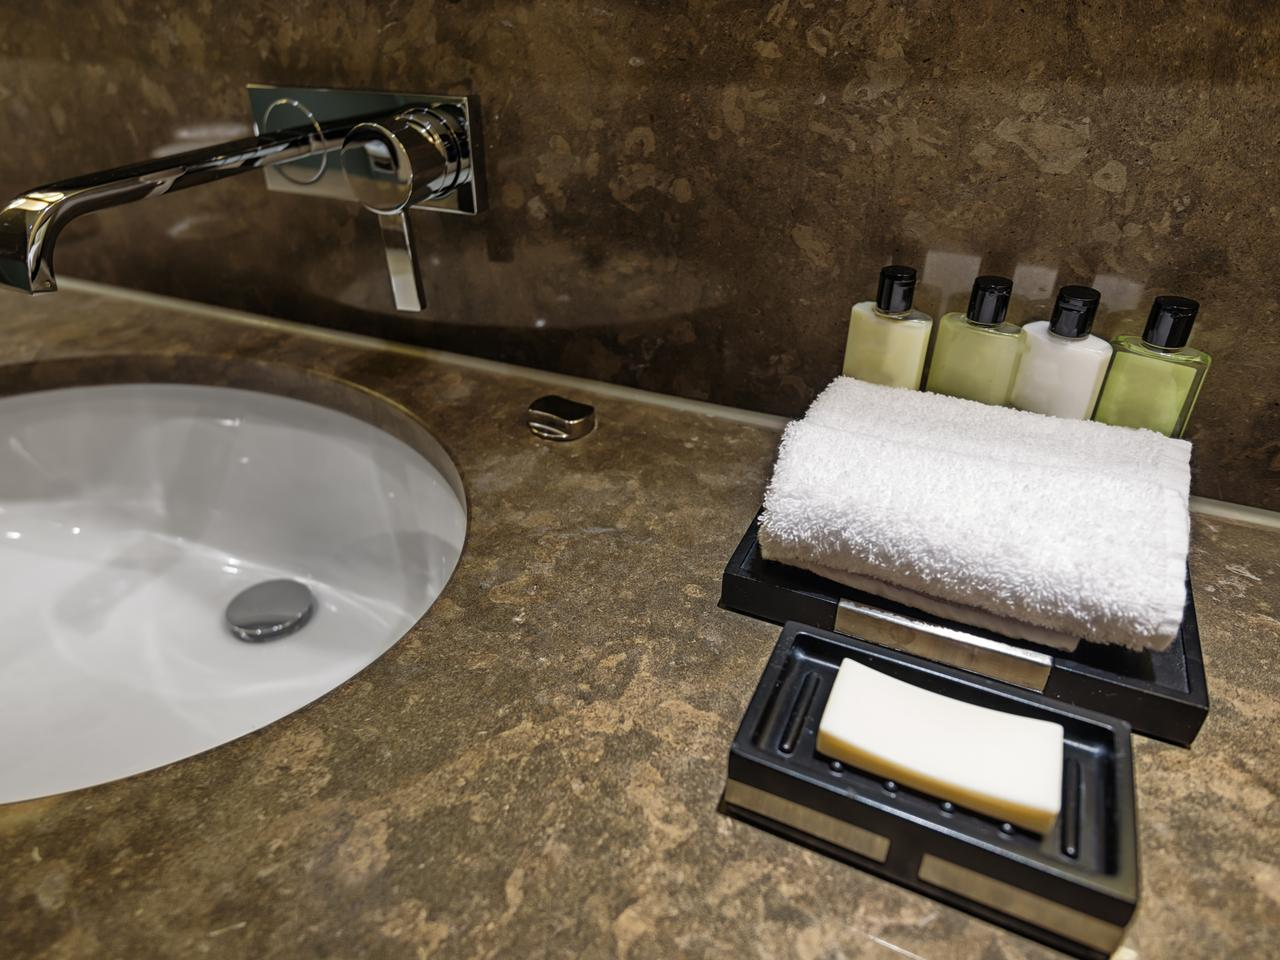 Hotel bathroom detail with soap, towel and shampoo